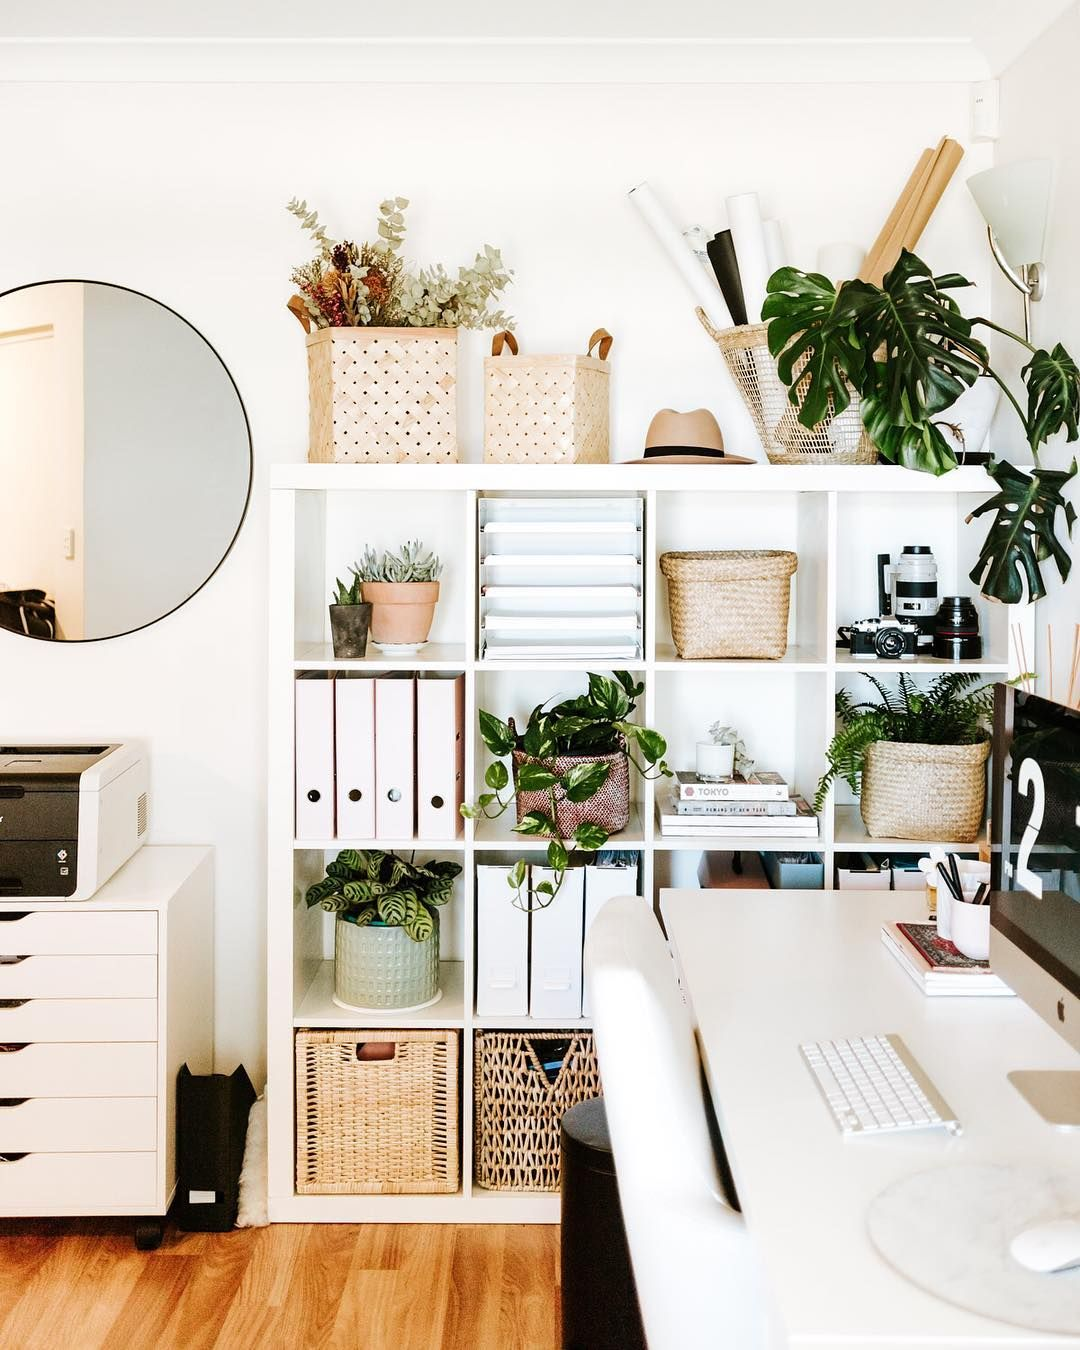 Originally wanted to replace this Ikea cube shelf with a